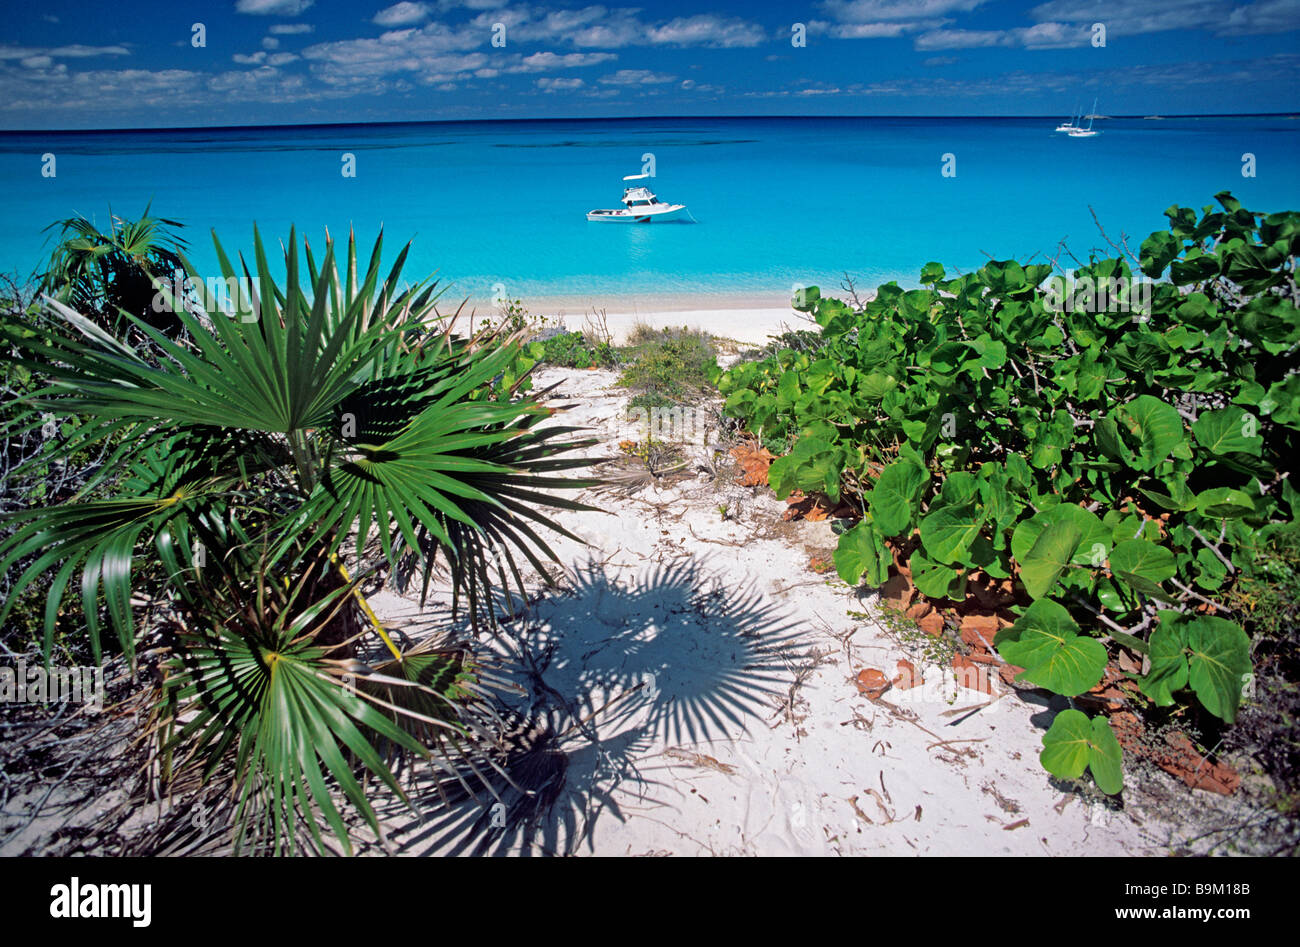 Bahamas Conception Island National Park Coastal Vegetation And